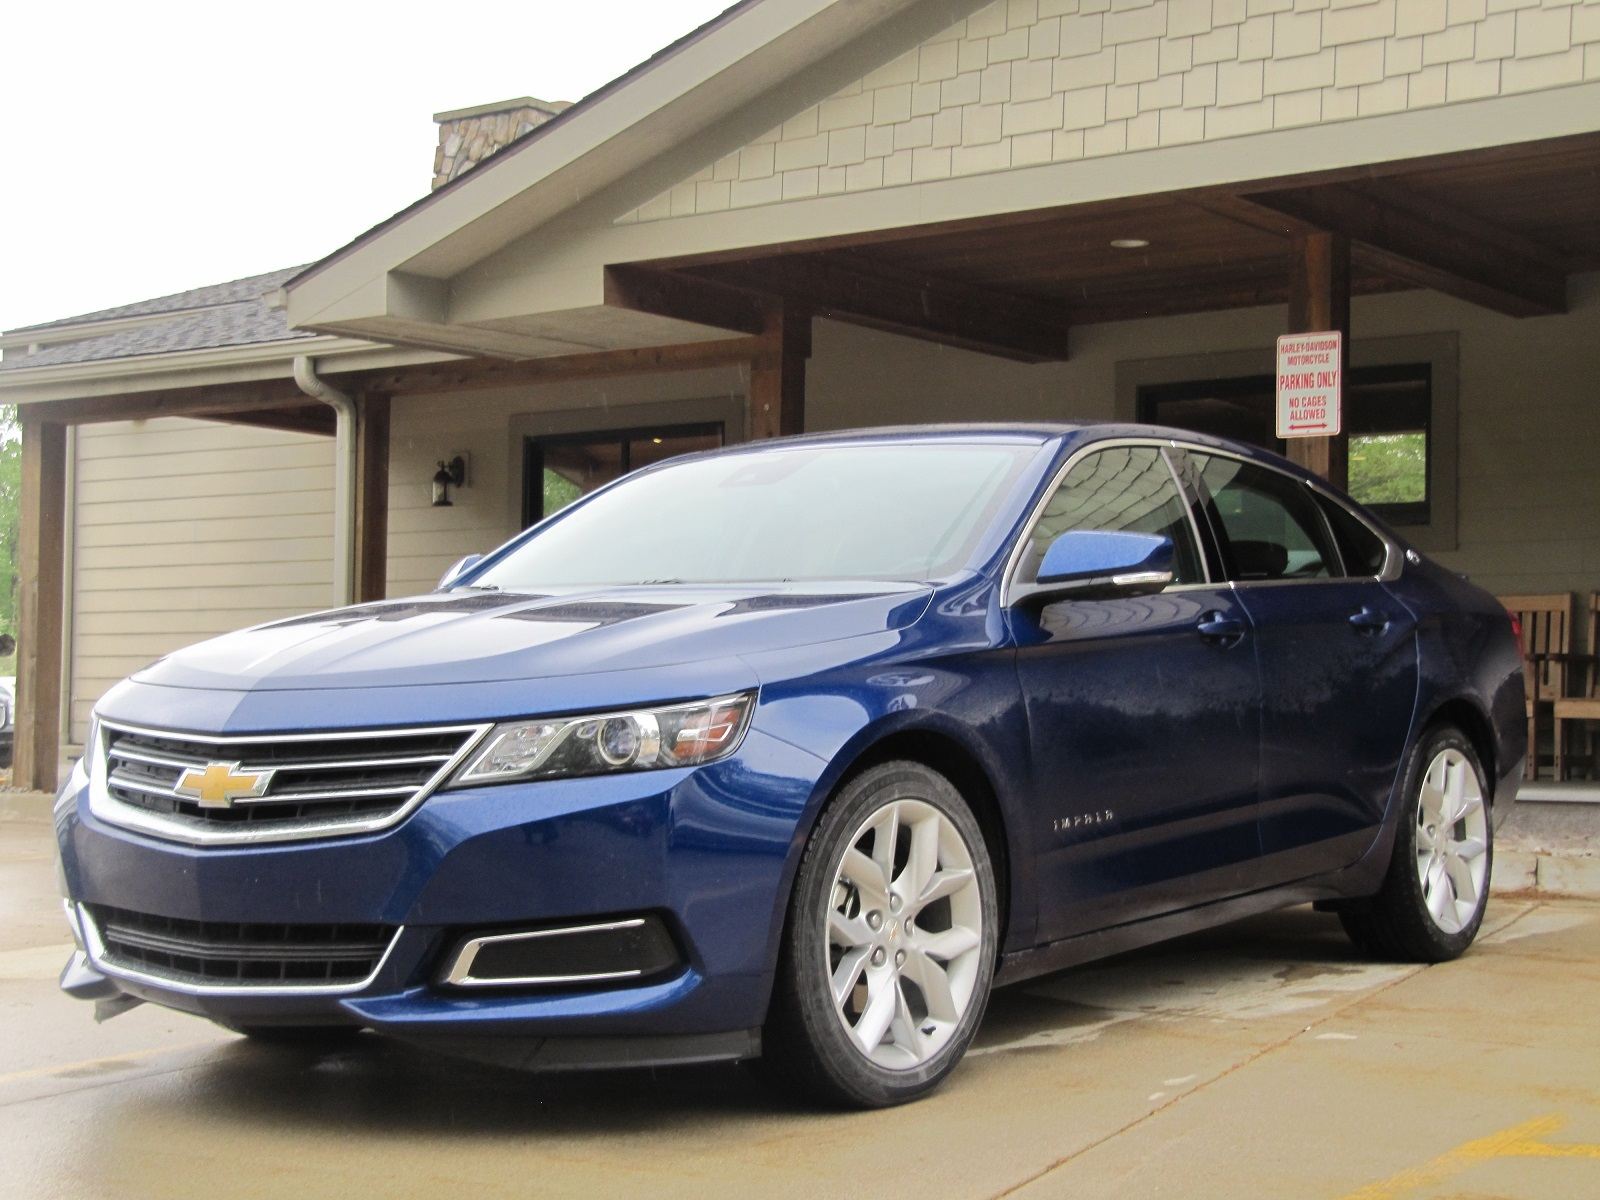 2014 Chevrolet Impala 2 5 Liter Four Cylinder Quick Drive